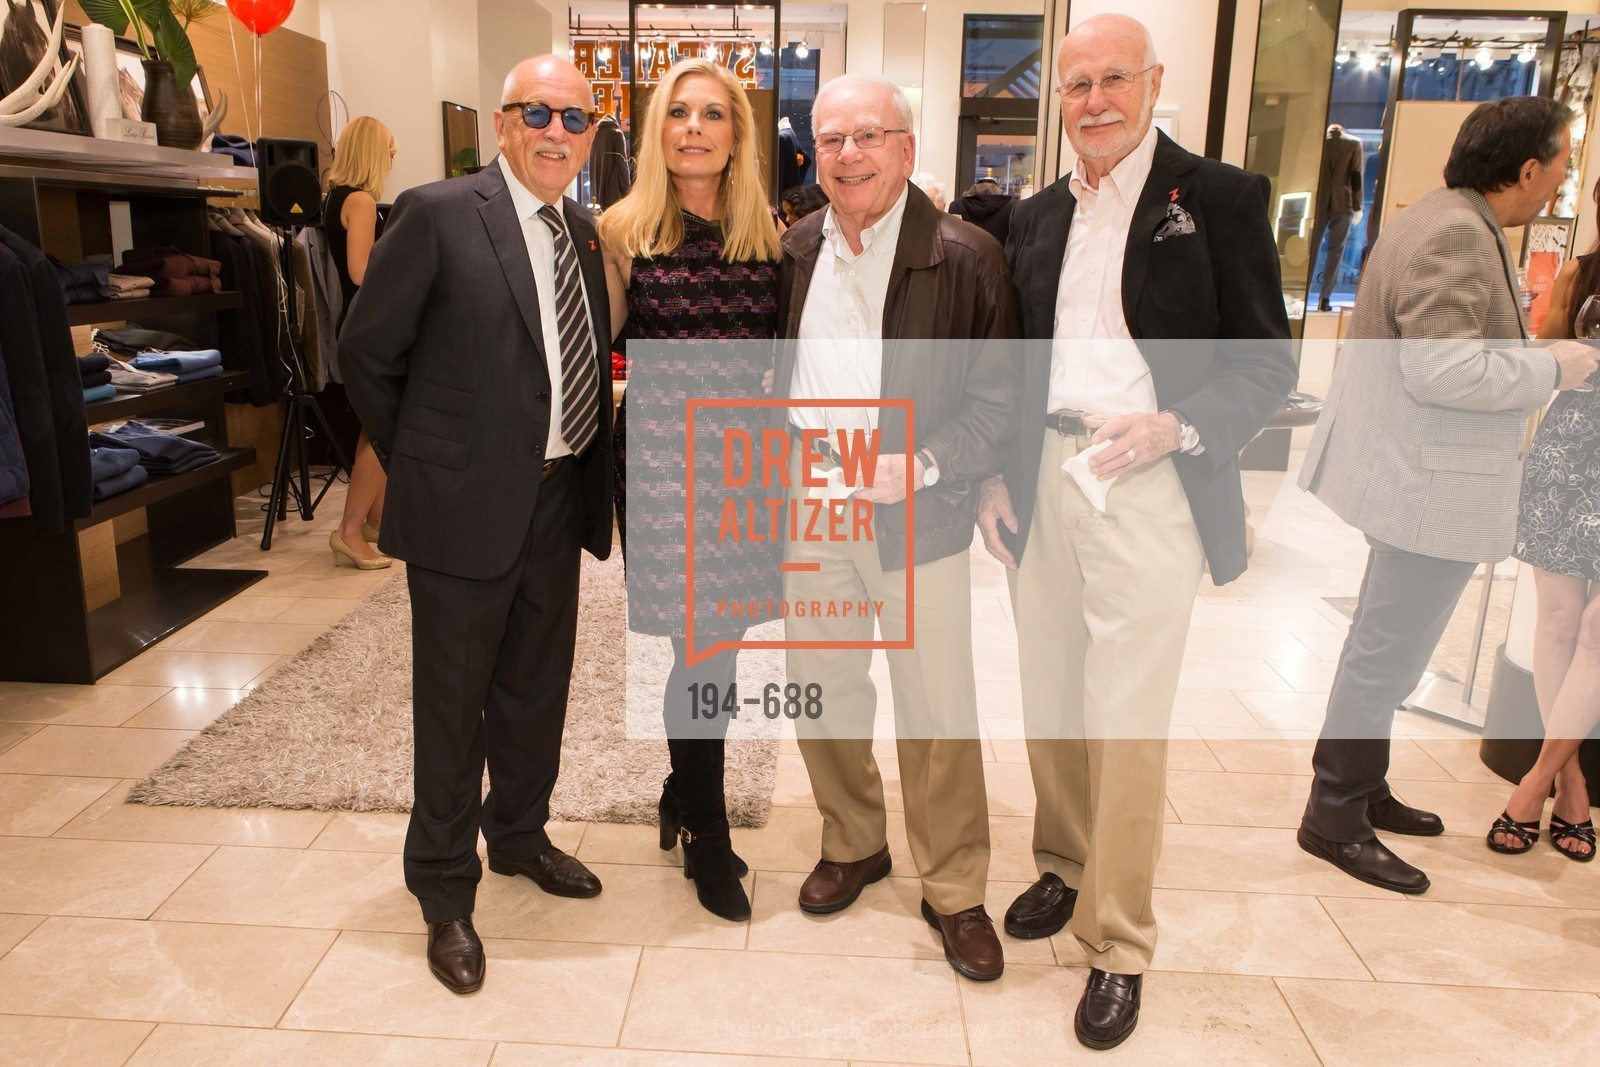 Wilkes Bashford, Jacqueline Jacoby, Tom Roghgiesser, George Lucas, Wilkes Bashford, In Memoriam 1933-2016, San Francisco, January 16th, 2016,Drew Altizer, Drew Altizer Photography, full-service agency, private events, San Francisco photographer, photographer california